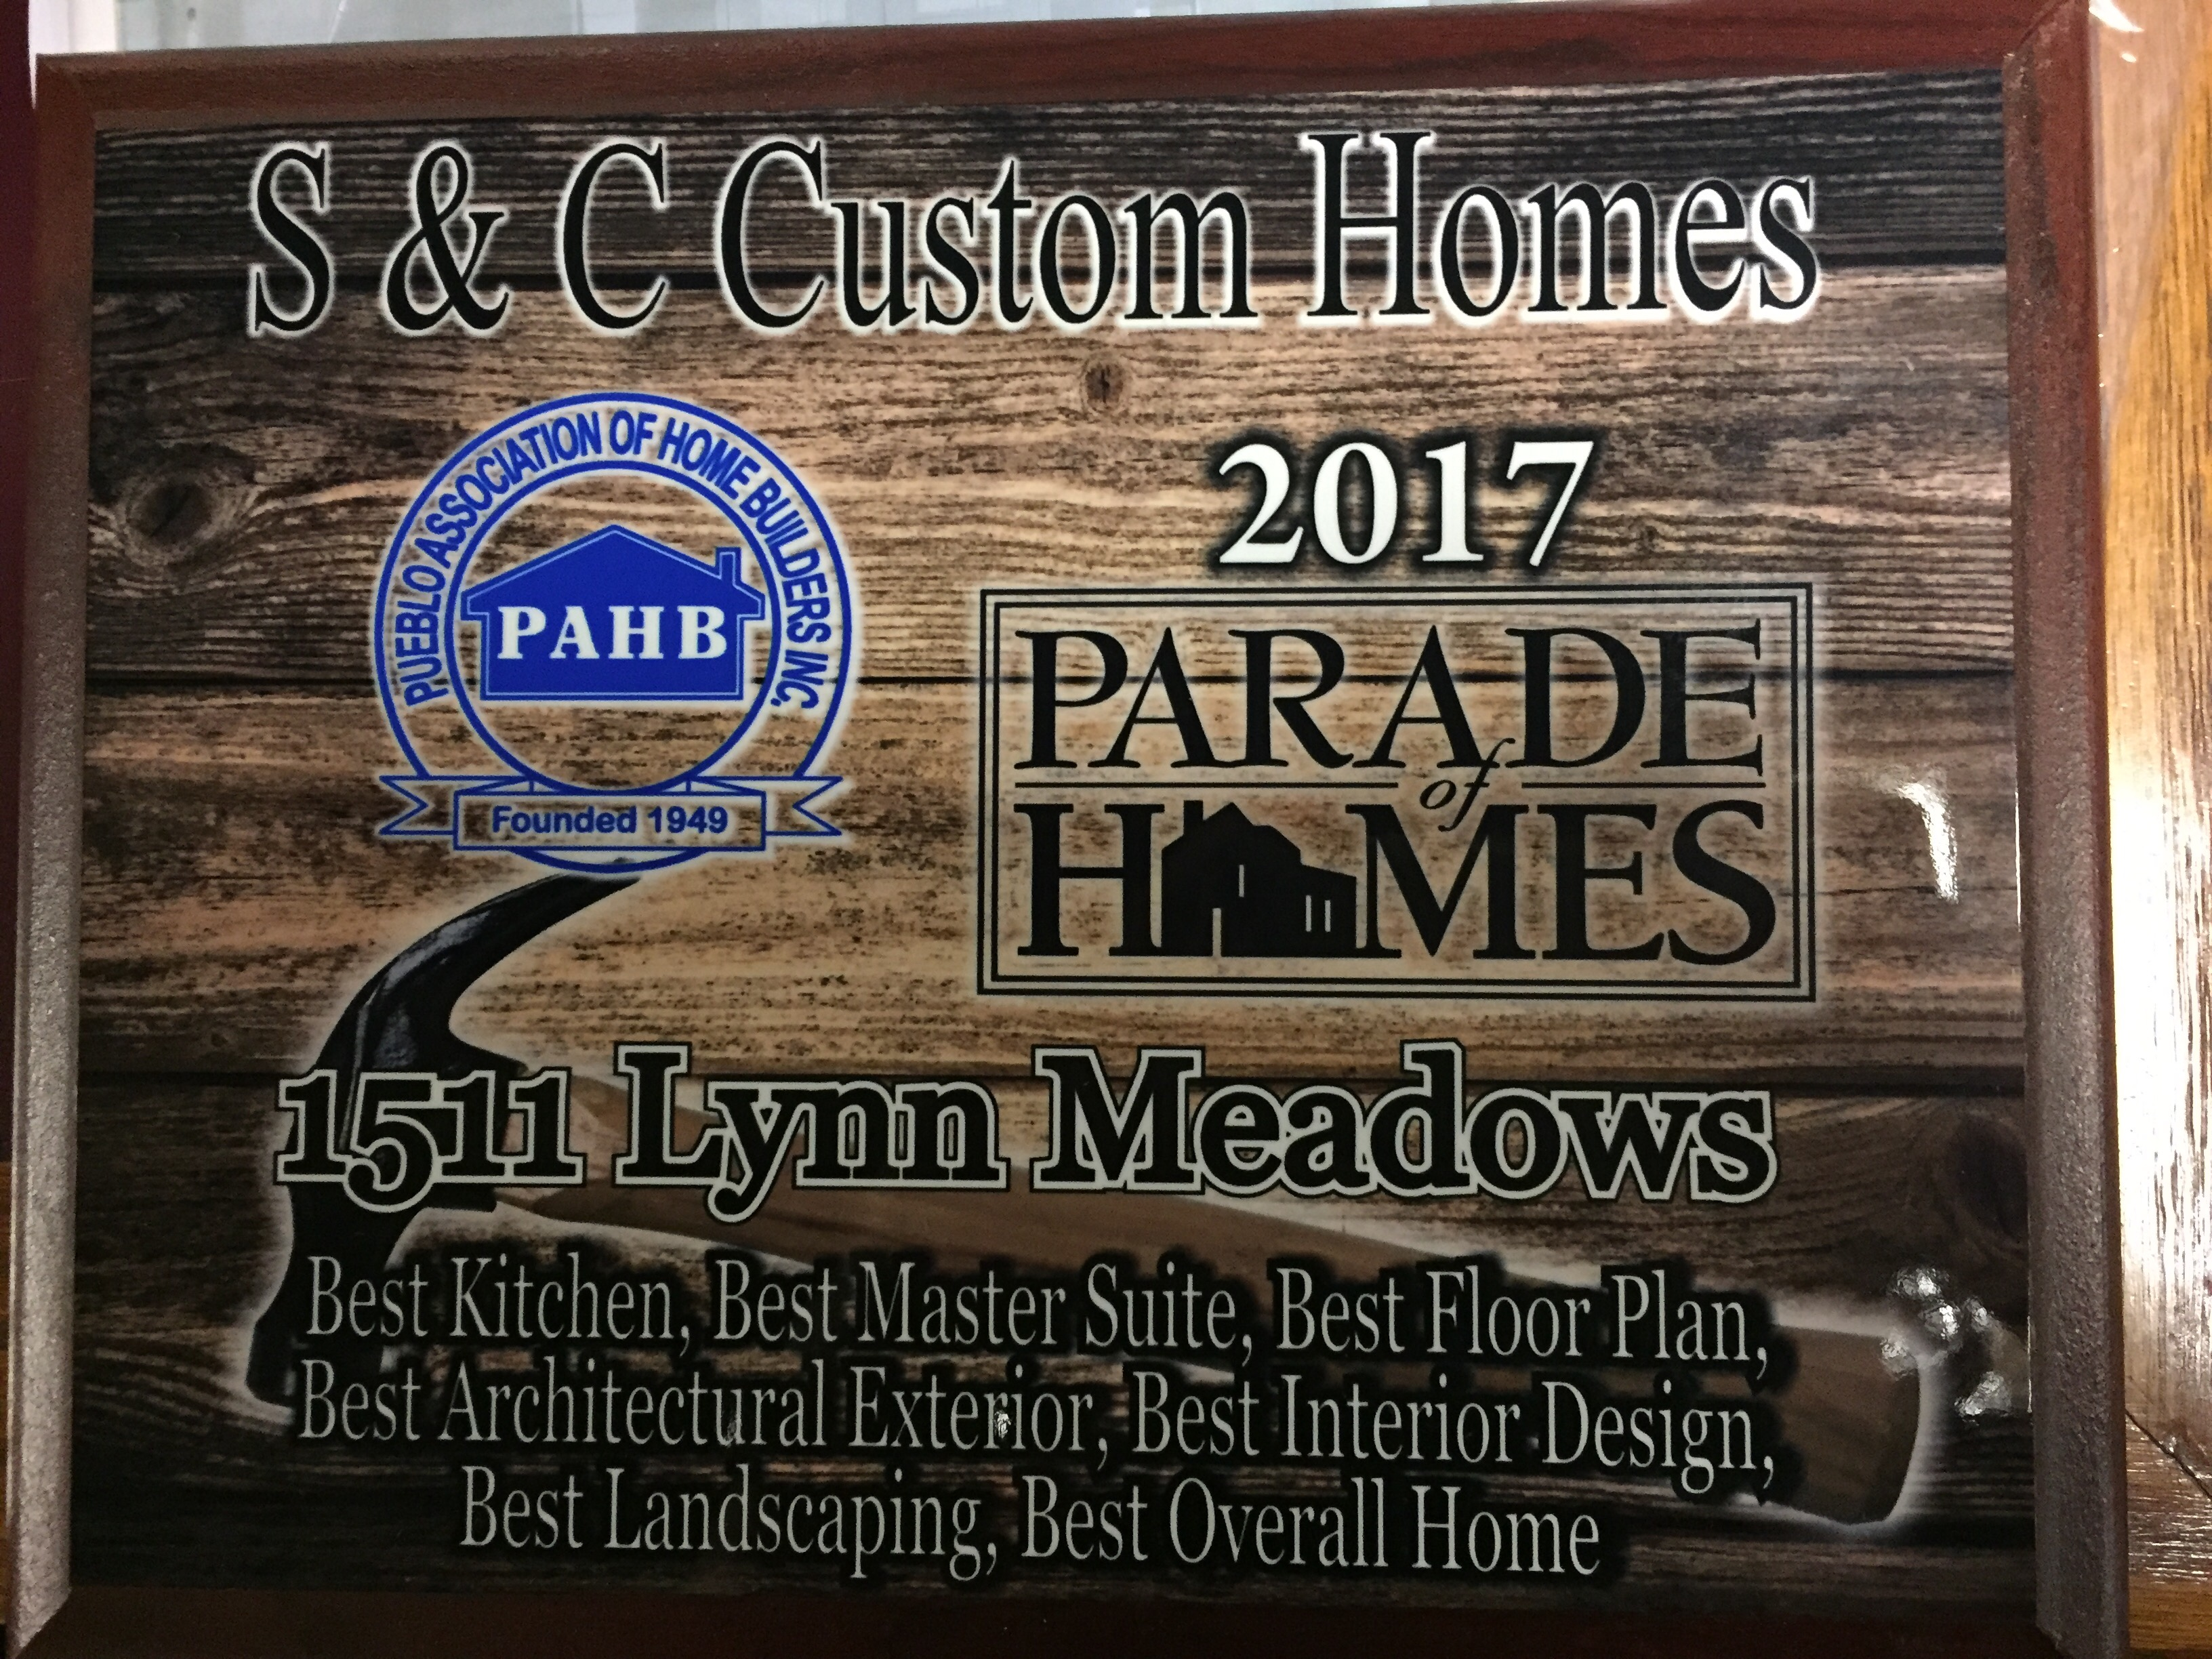 2017 Parade of Homes Award